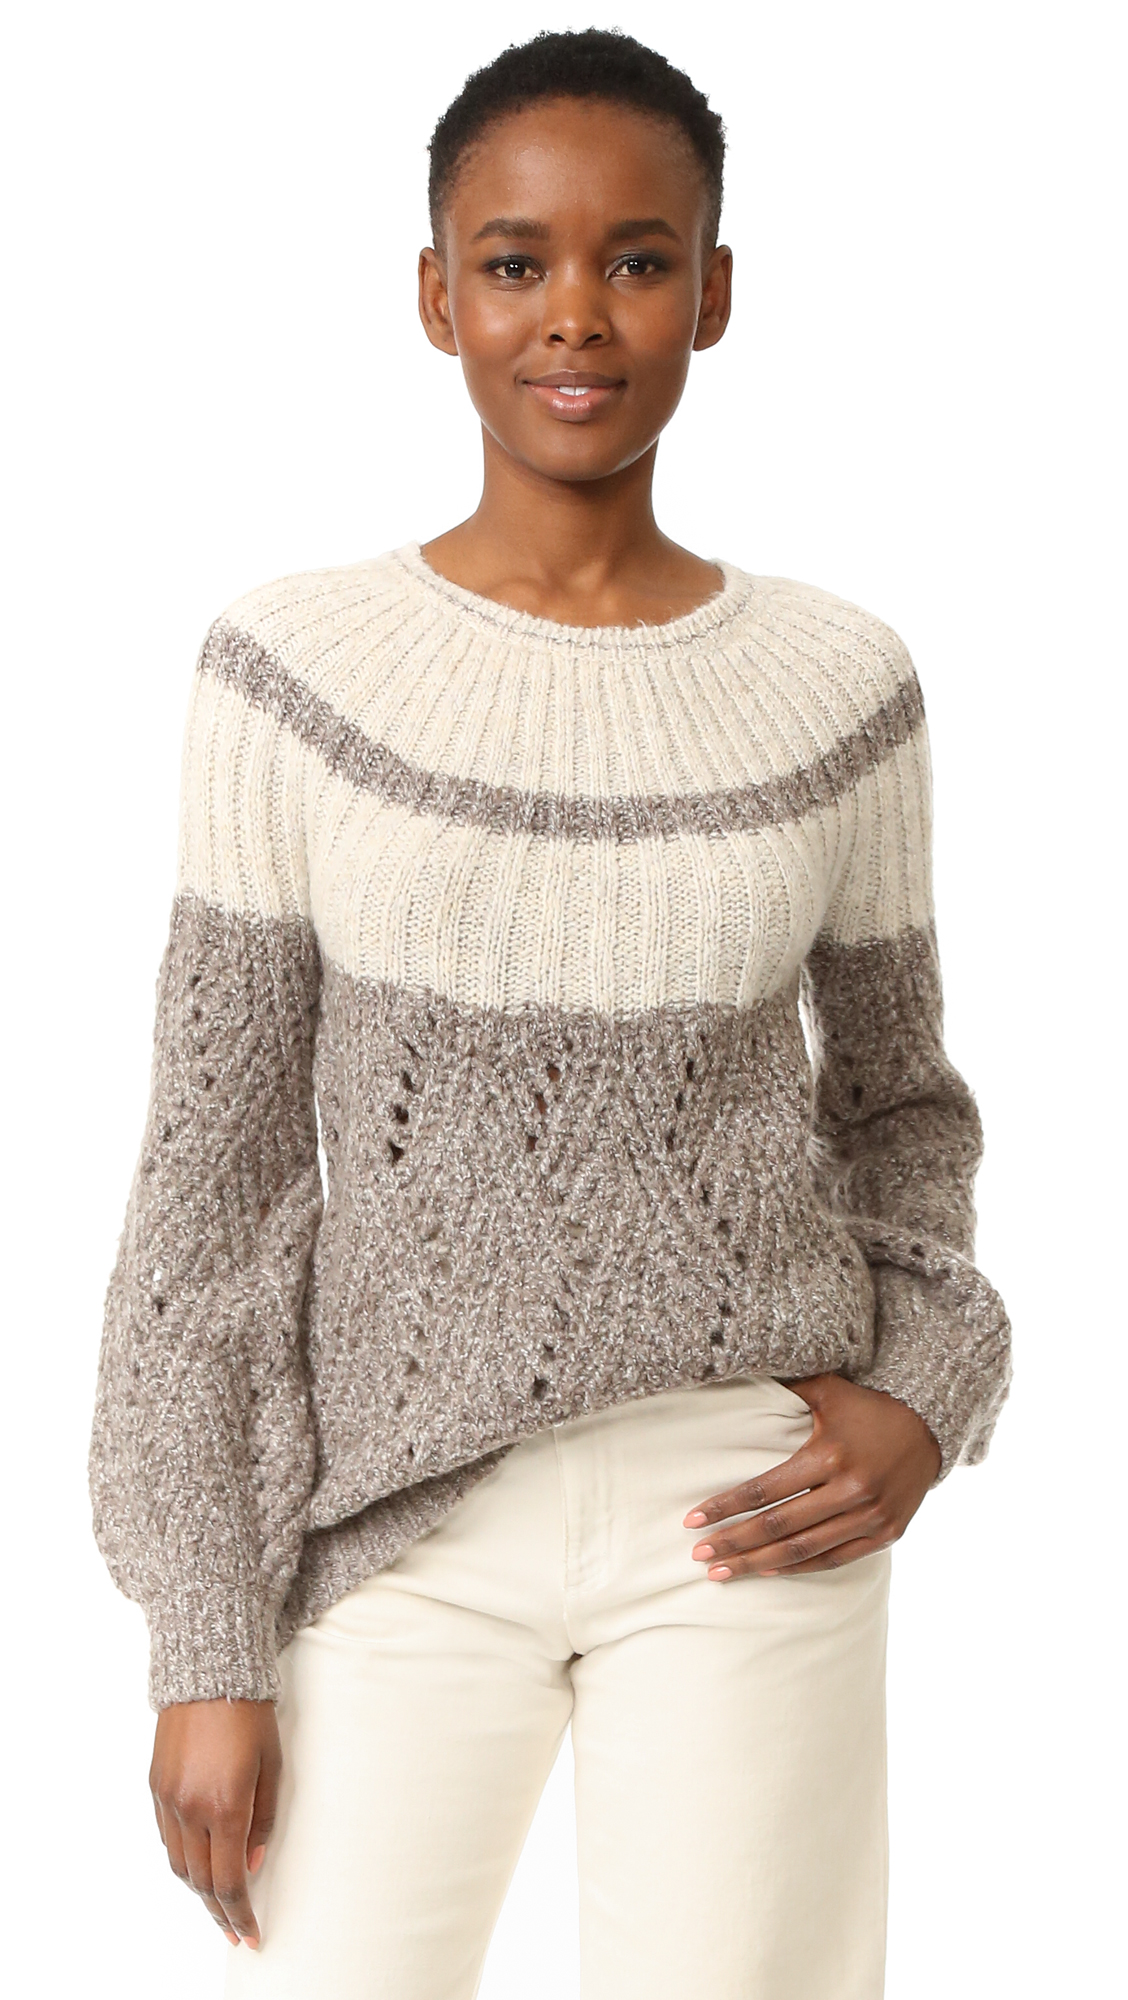 Raised stitches create a chevron pattern on this cozy TSE Cashmere sweater. Crew neckline. Long sleeves. Fabric: Brushed knit. 49% nylon/24% acrylic/17% mohair/10% wool. Dry clean. Imported, China. Measurements Length: 26in / 66cm, from shoulder Measurements from size